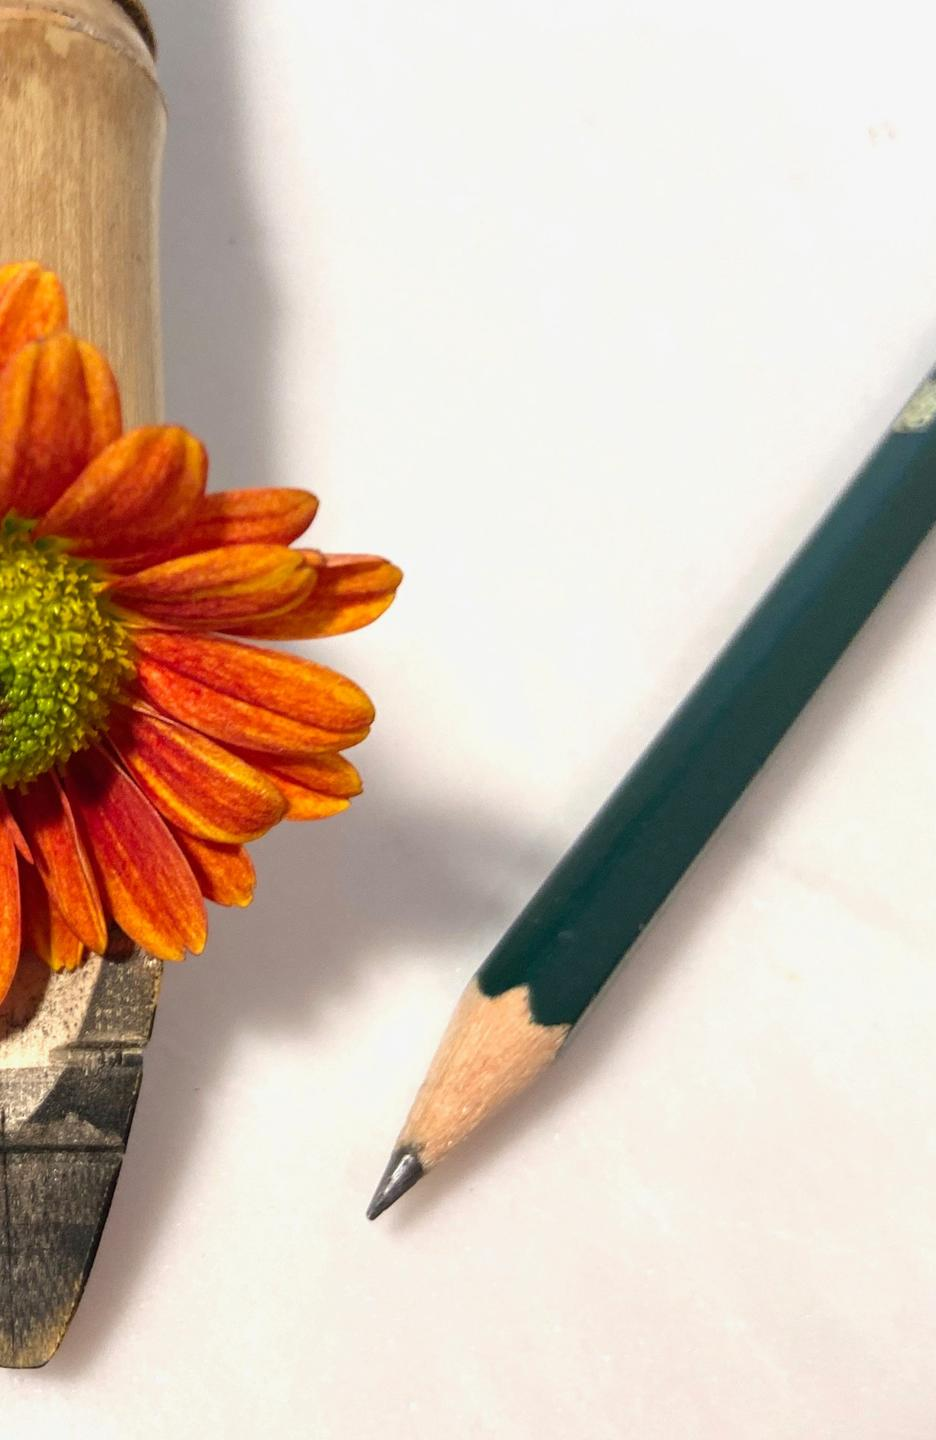 drawing pencil and bamboo ink pen with orange zinnia